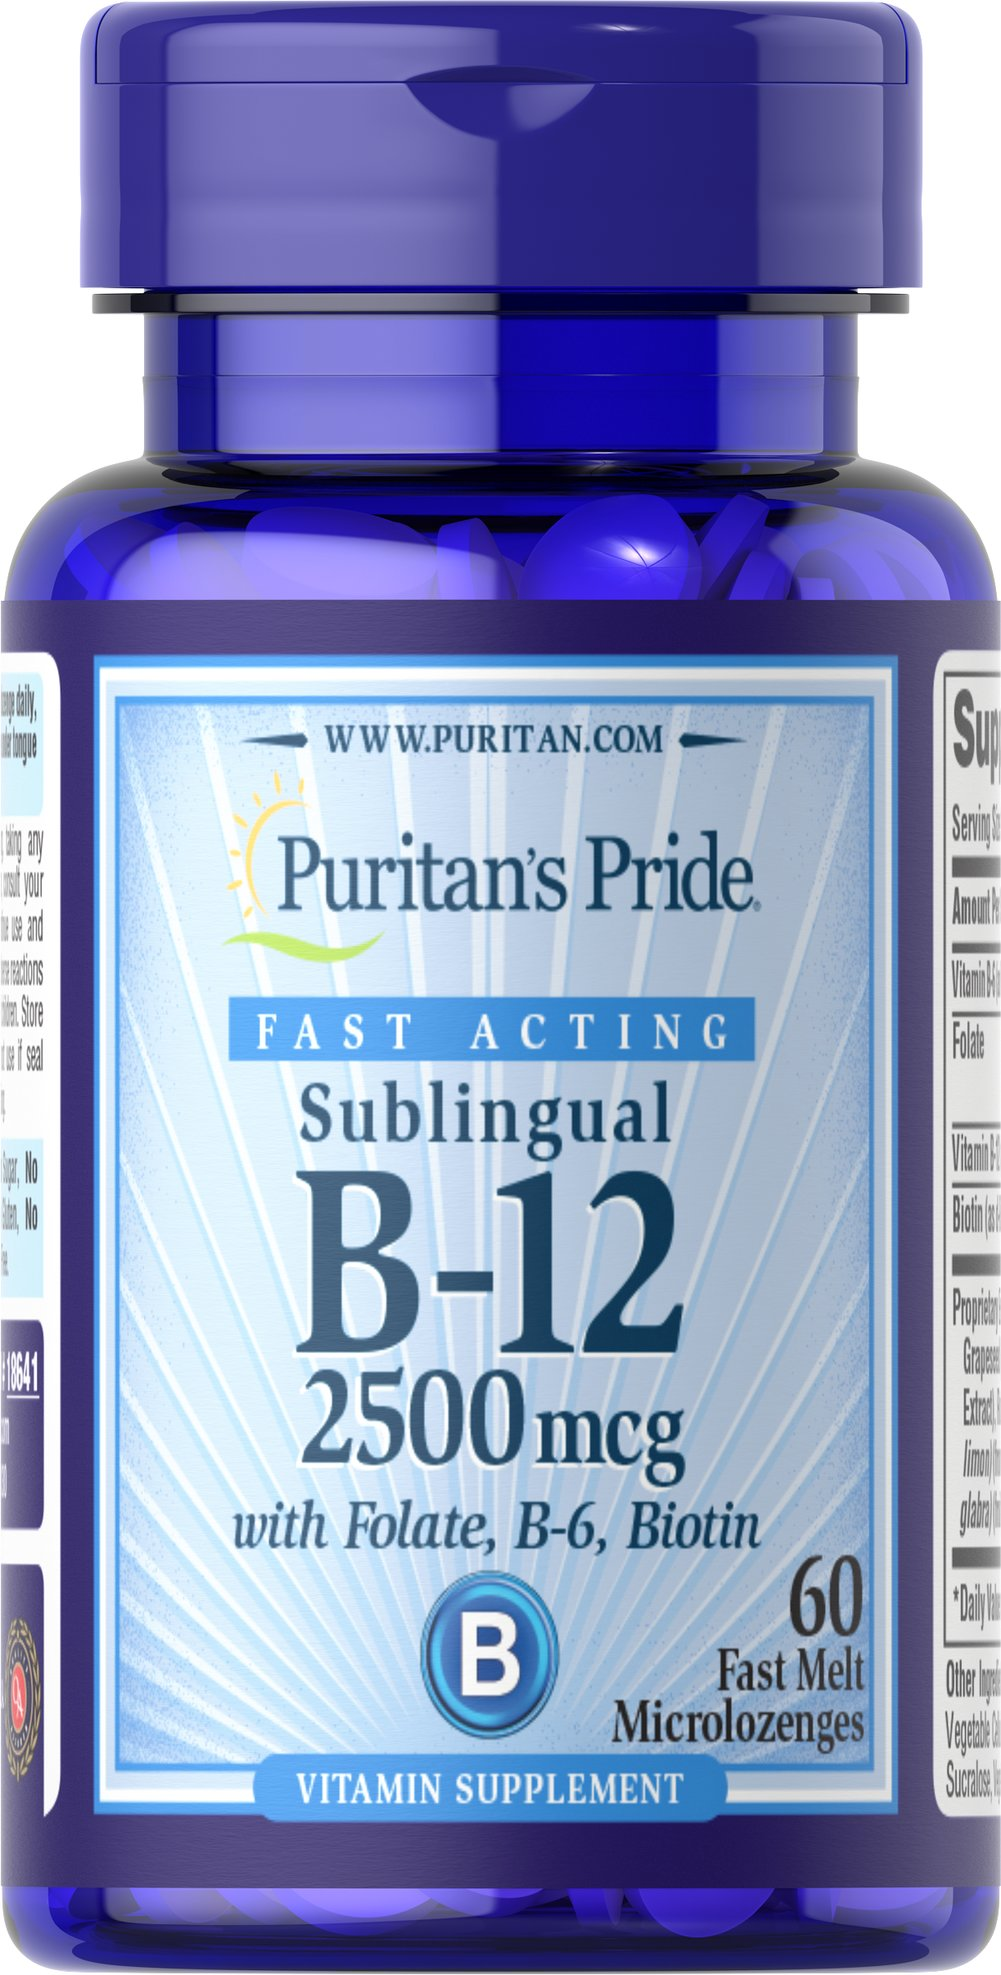 Vitamin B-12 2500 mcg Sublingual with Folic Acid, Vitamin B-6 and Biotin <p>Sublingual microlozenges dissolve easily in your mouth</p><p>An easy way to nourish a healthy heart and circulatory system**</p><p>Helps develop and regenerate red blood cells**</p><p>Contributes to proper metabolic functioning**</p><p>Plays a role in energy metabolism in the body**</p> 60 Microlozenges 2500 mcg $17.99